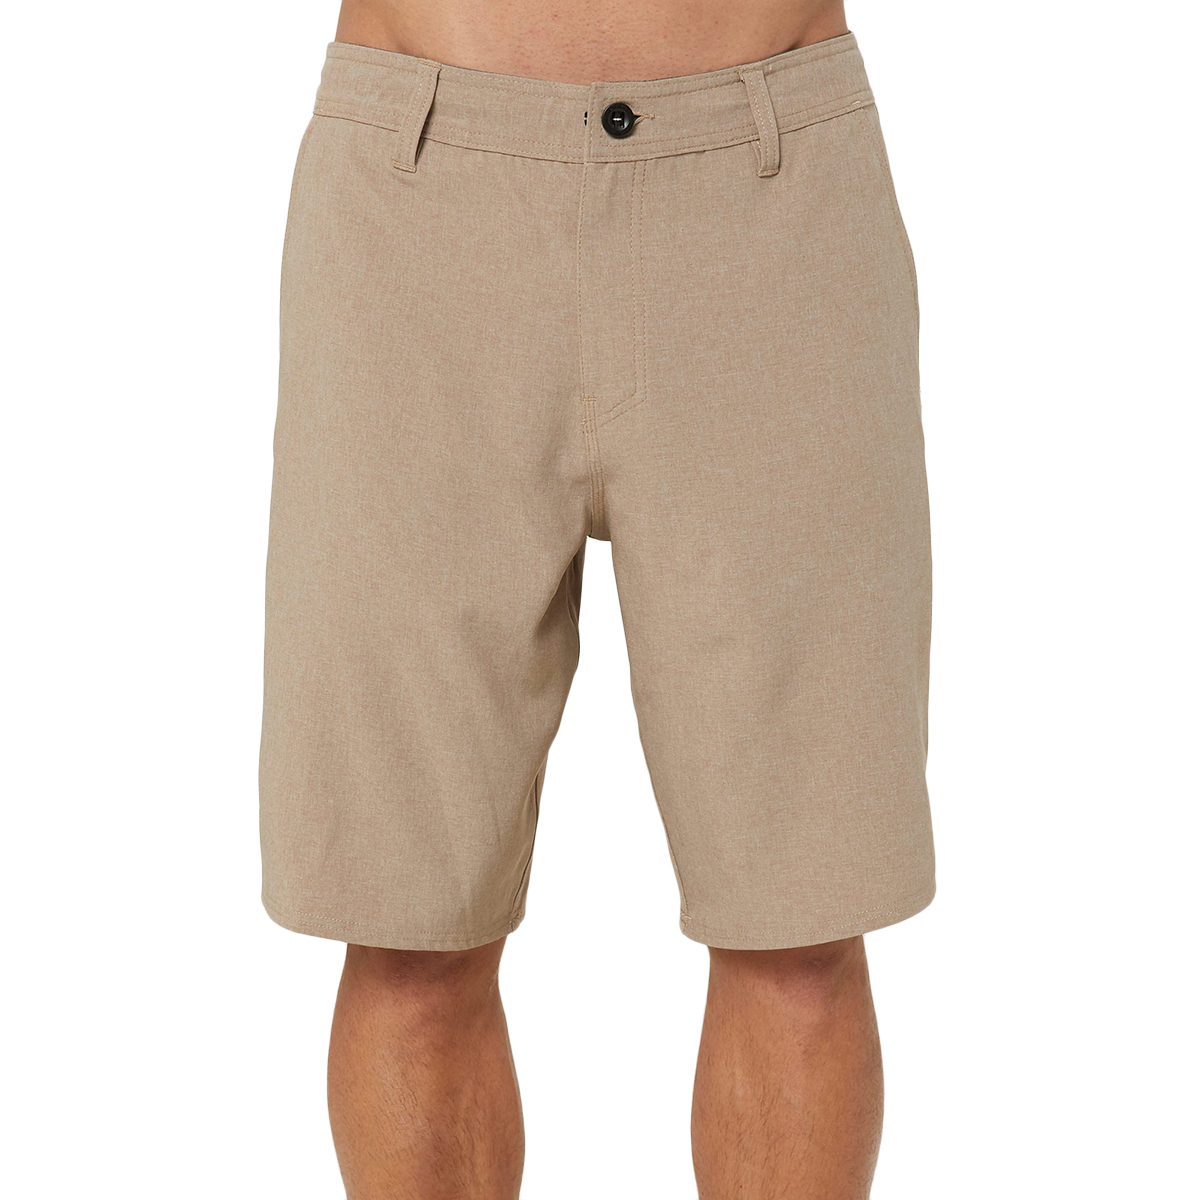 O'neill Men's Reserve Heather Hybrid Shorts - Brown, 32